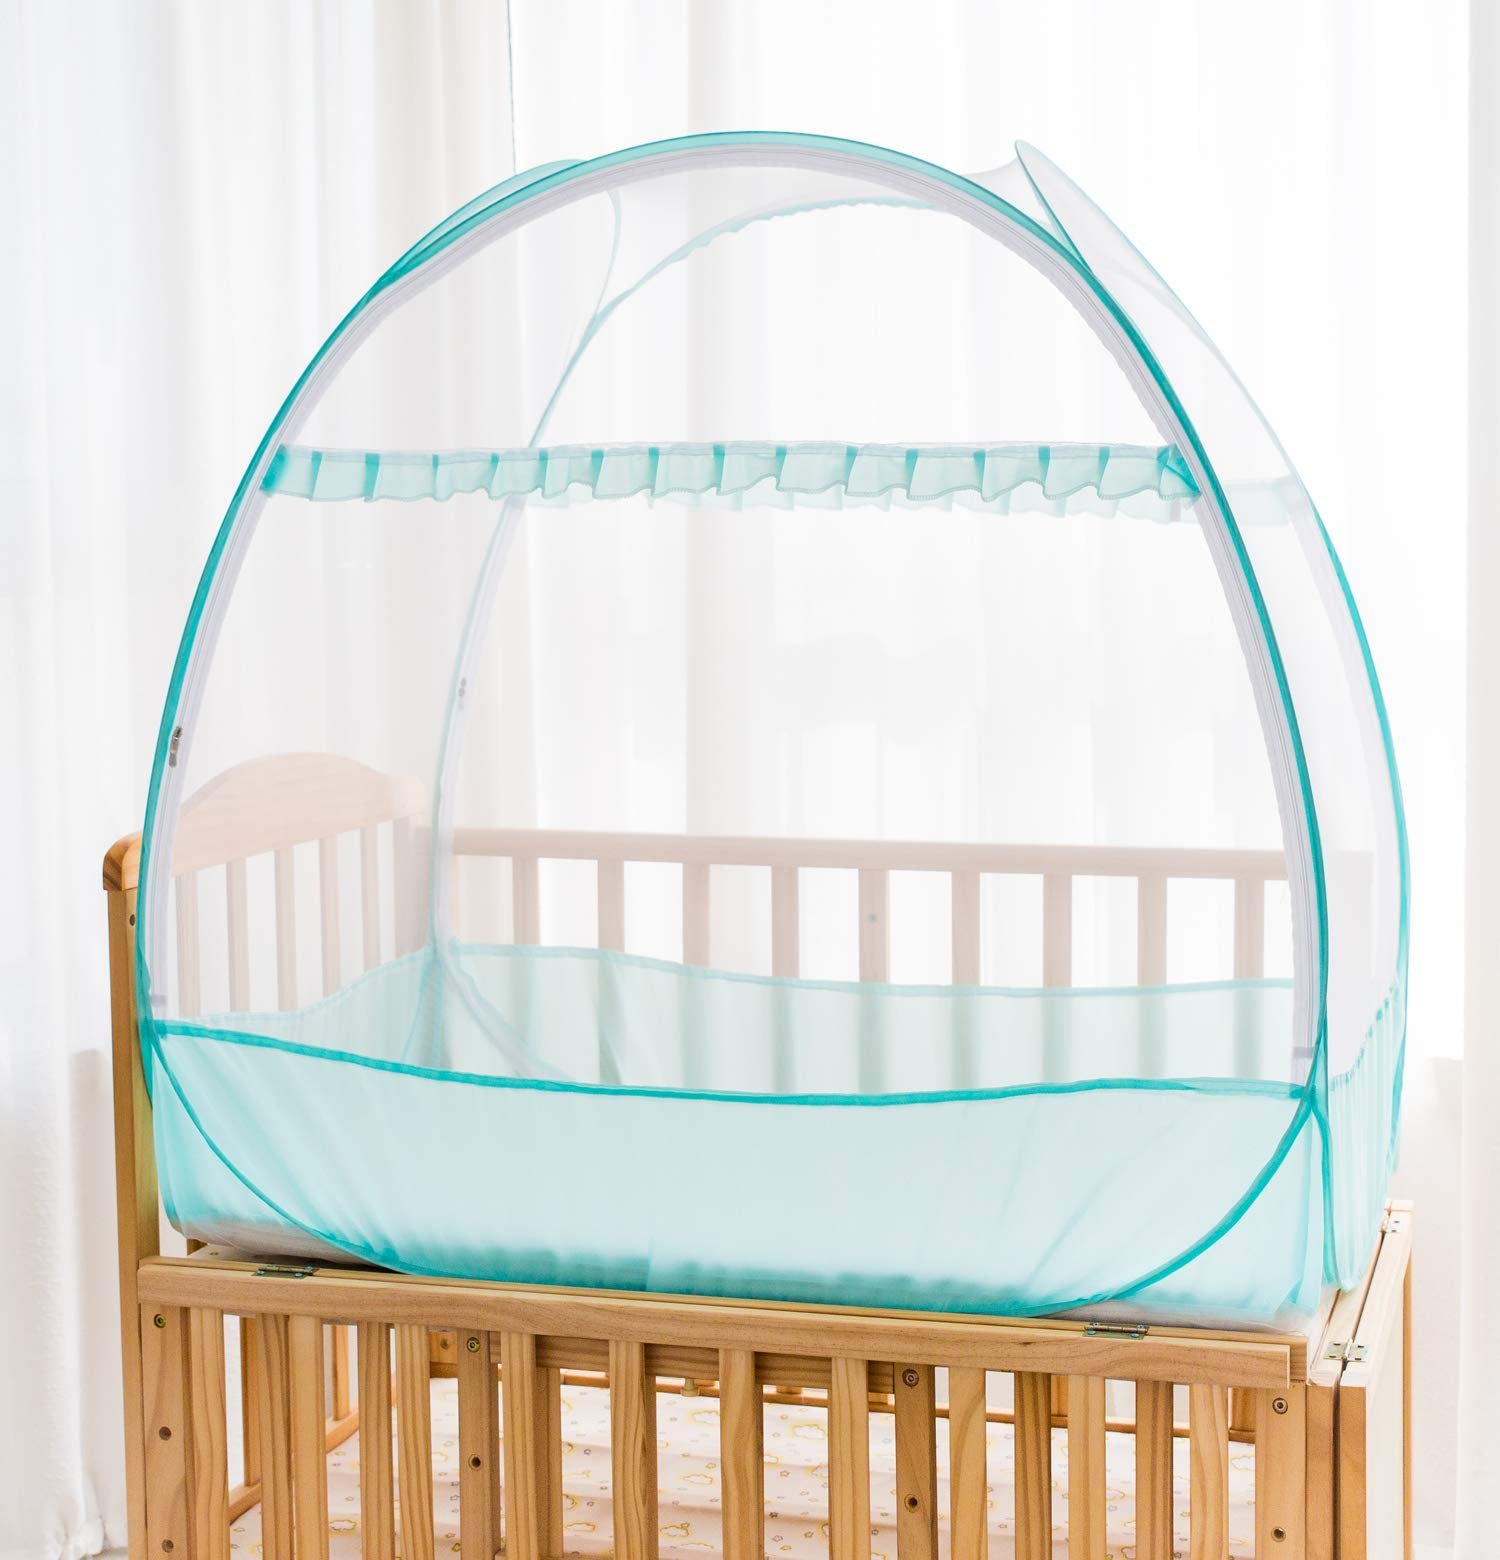 Baby Crib Pop up Tent, V-Fyee Baby Bed Mosquito Net Safety Tent Canopy Cover to Keep Toddler from Climbing Out and Keep Insects Out (Cyan, 47''L x 26''W x 39''H)